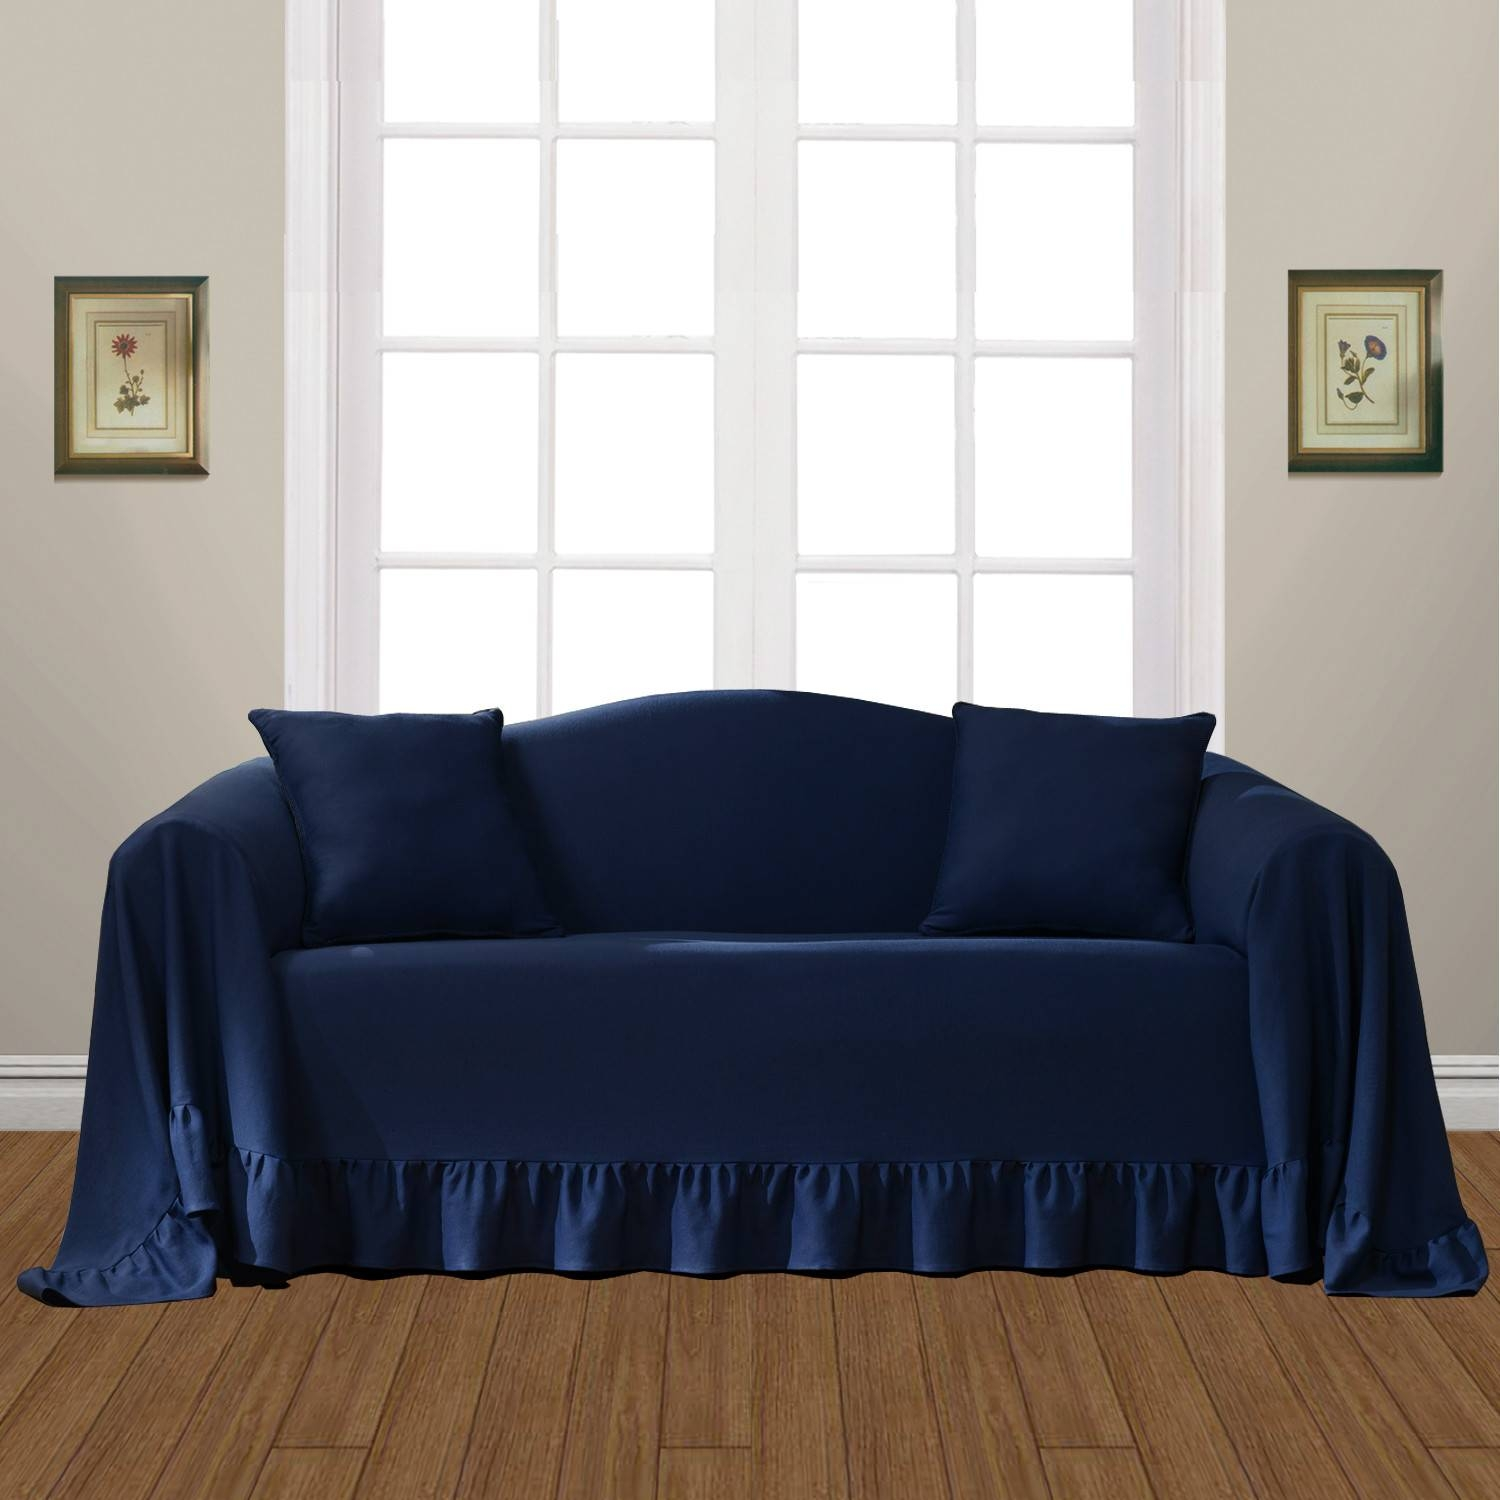 Furniture: Slipcovers Chairs | Sofa Armrest Covers | Recliner intended for Blue Slipcovers (Image 8 of 15)